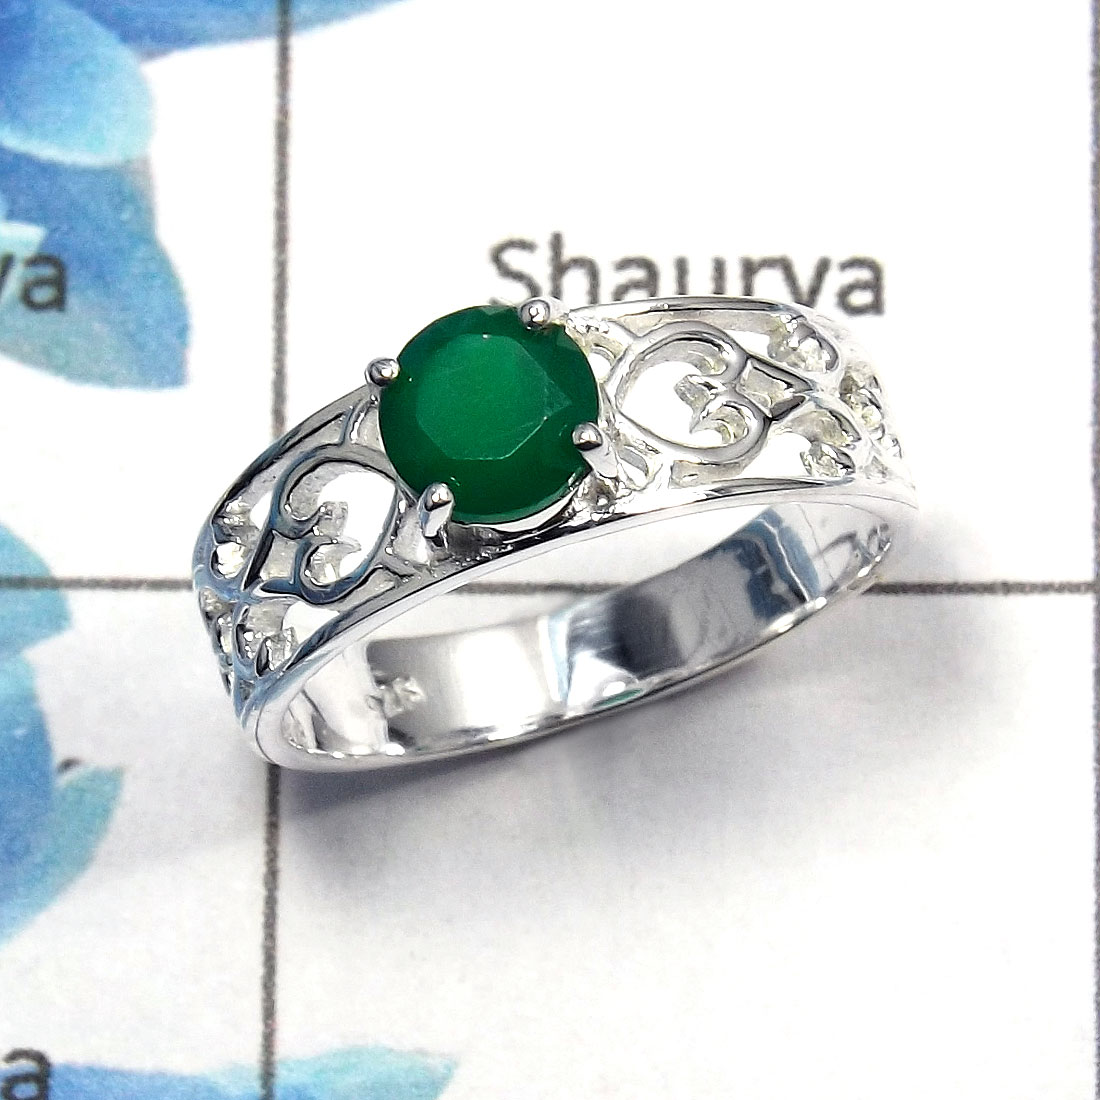 Green Onyx Cut G - SCR757 - Solid 92.5% Sterling Silver Natural Green Onyx Cut Gemstone Casting Ring